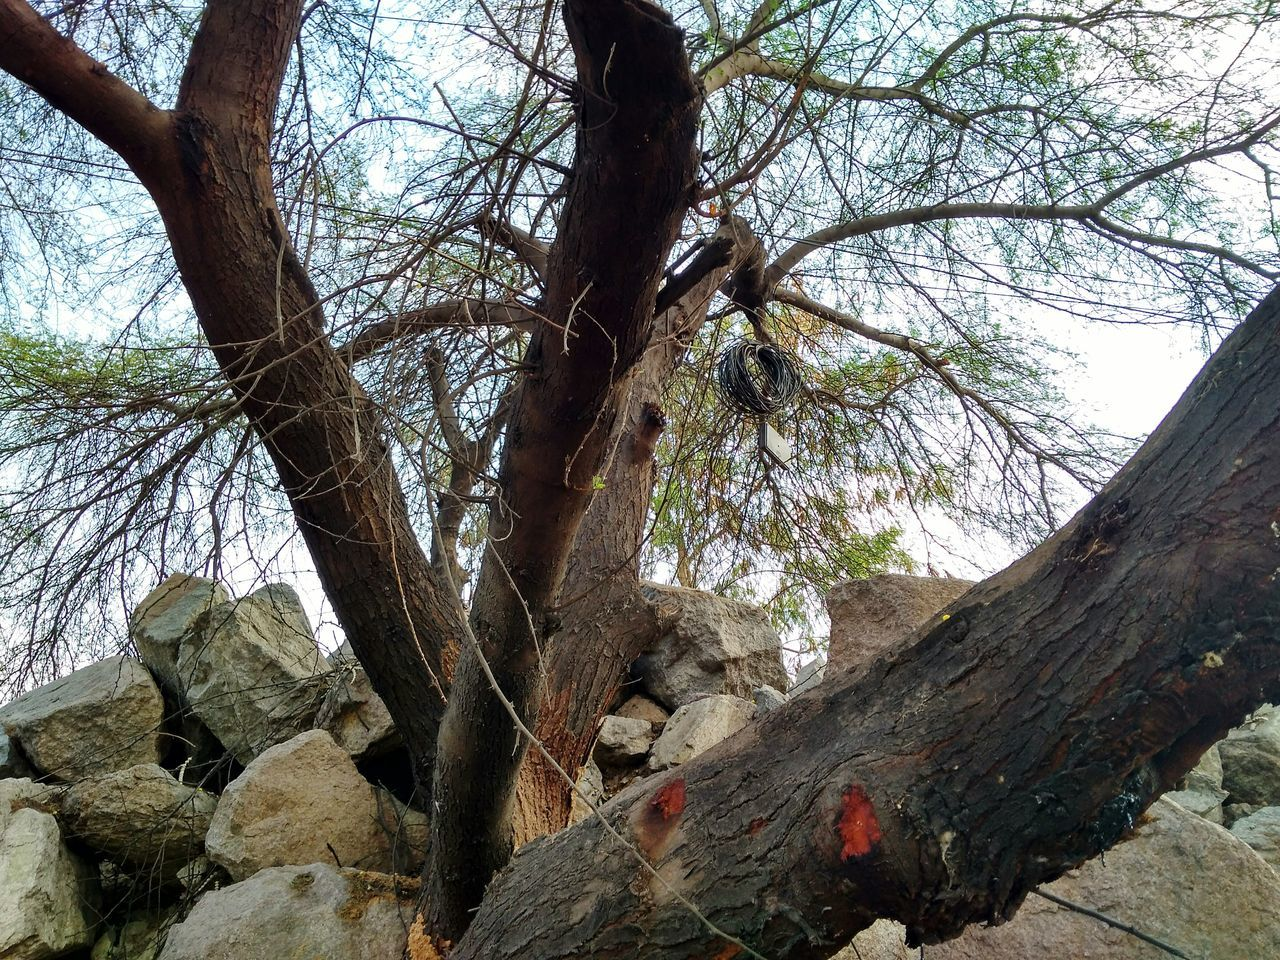 tree, tree trunk, nature, branch, day, no people, forest, outdoors, tranquility, beauty in nature, low angle view, bare tree, growth, scenics, landscape, sky, dead tree